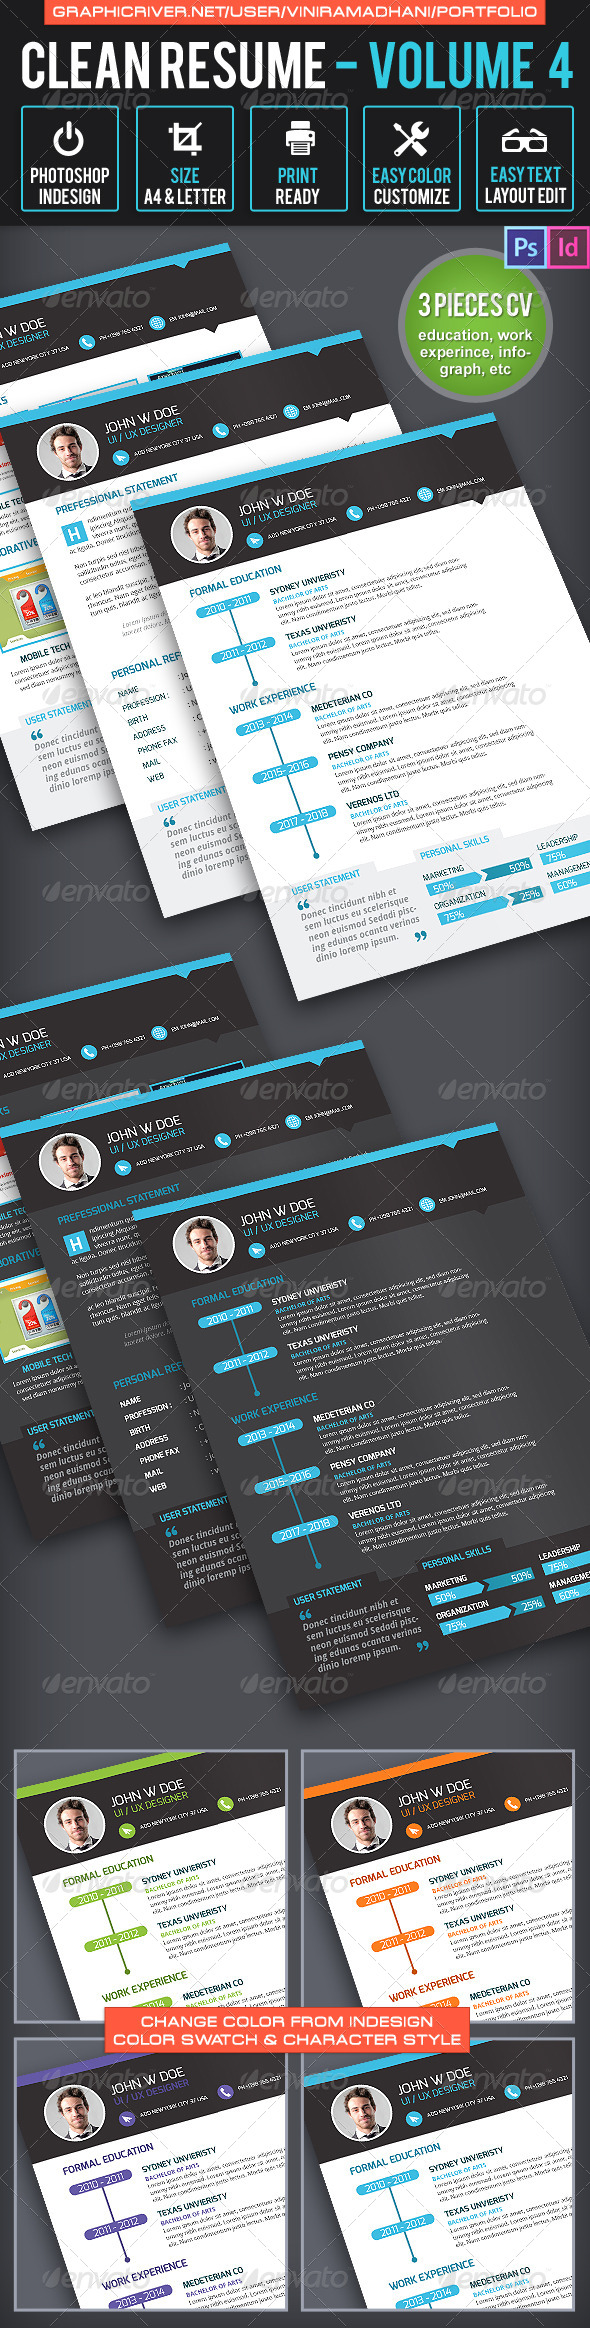 GraphicRiver Clean Resume Volume 4 6513415